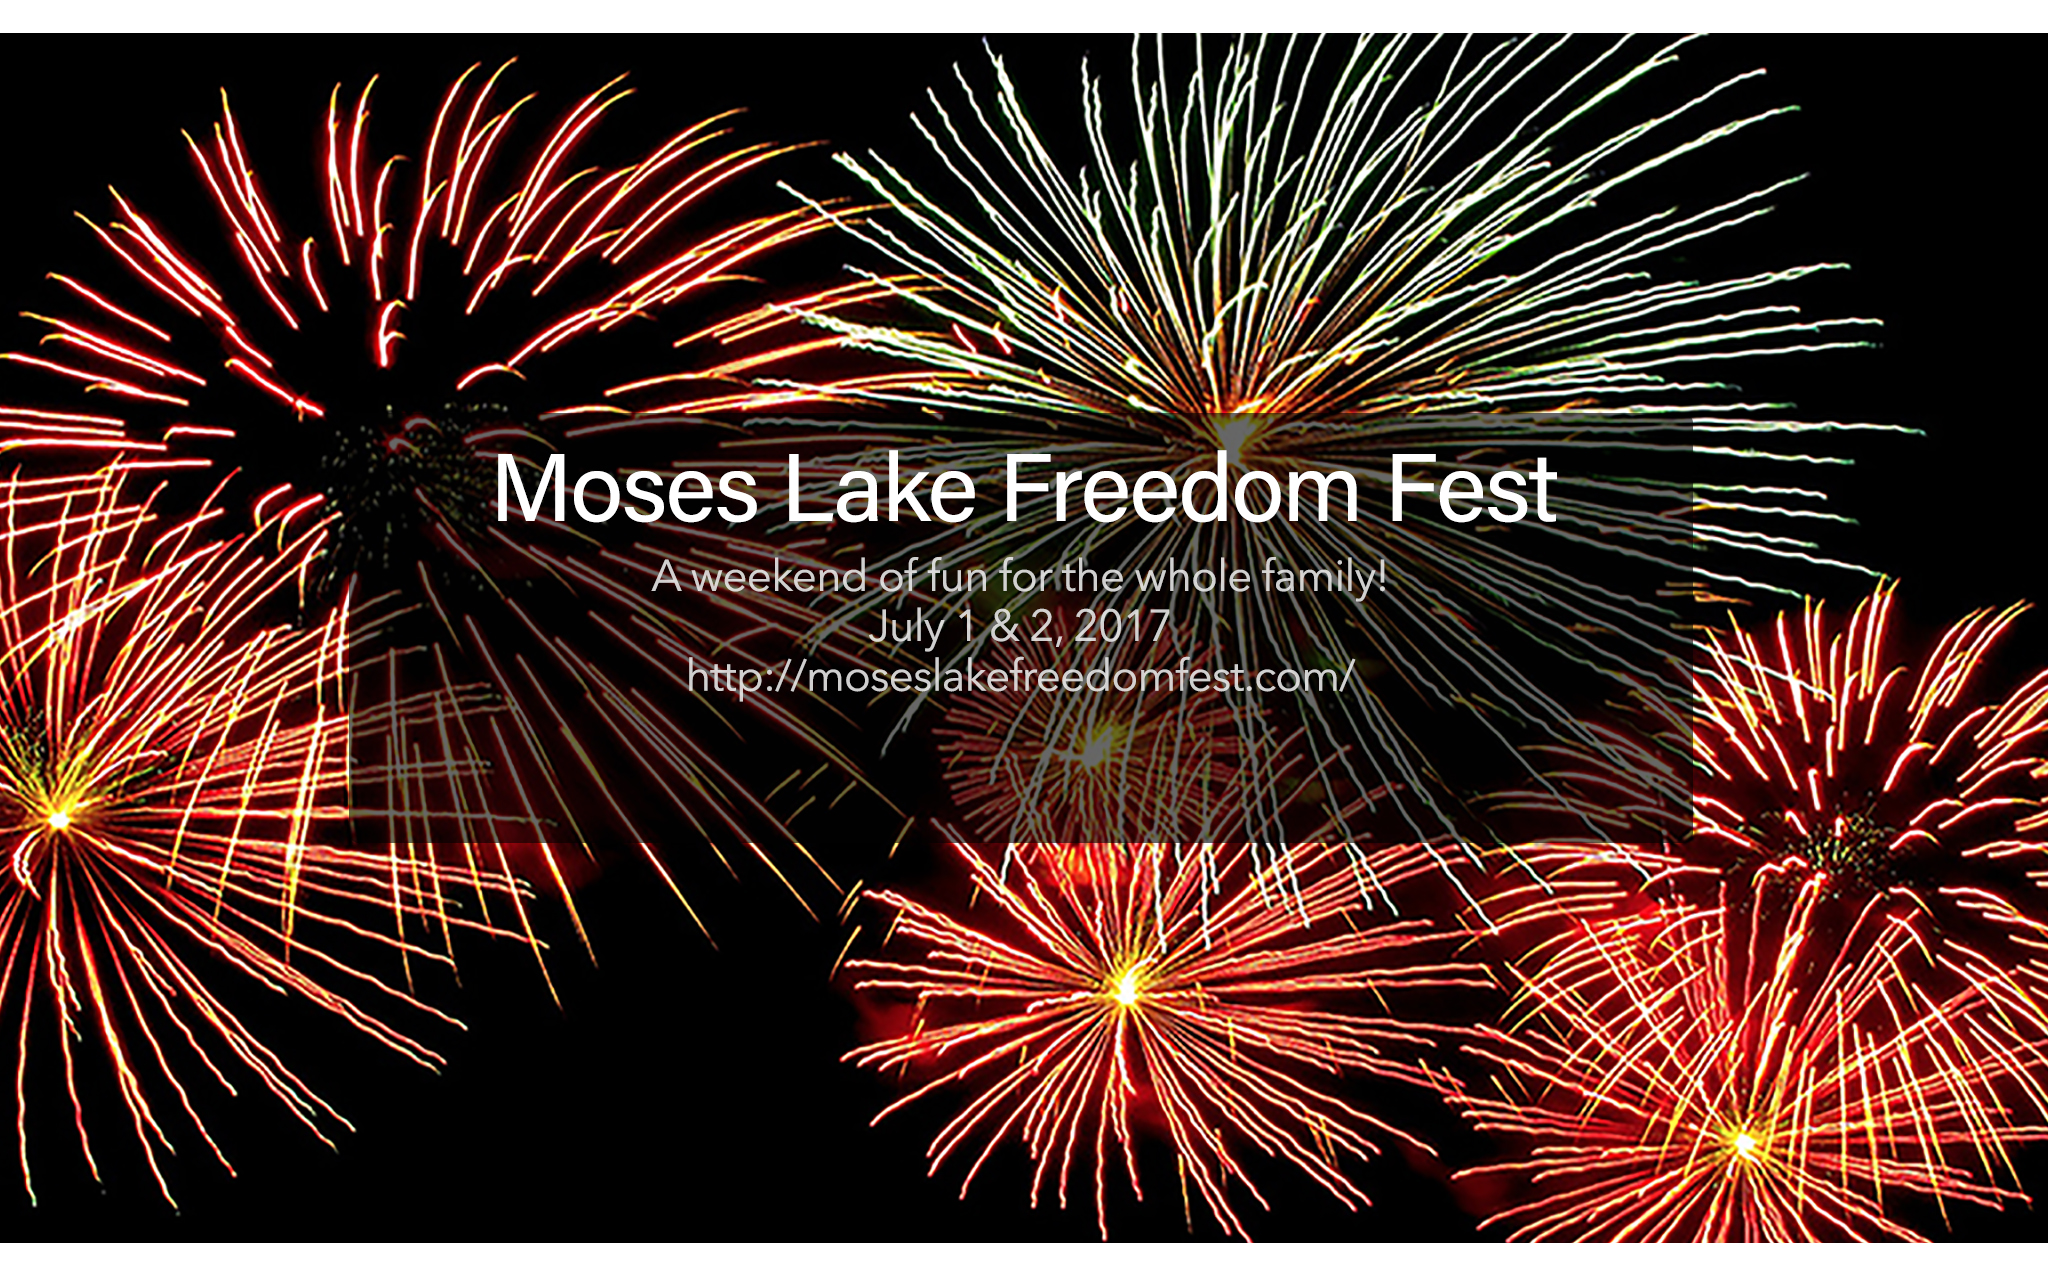 MOSES LAKE FREEDOM FEST